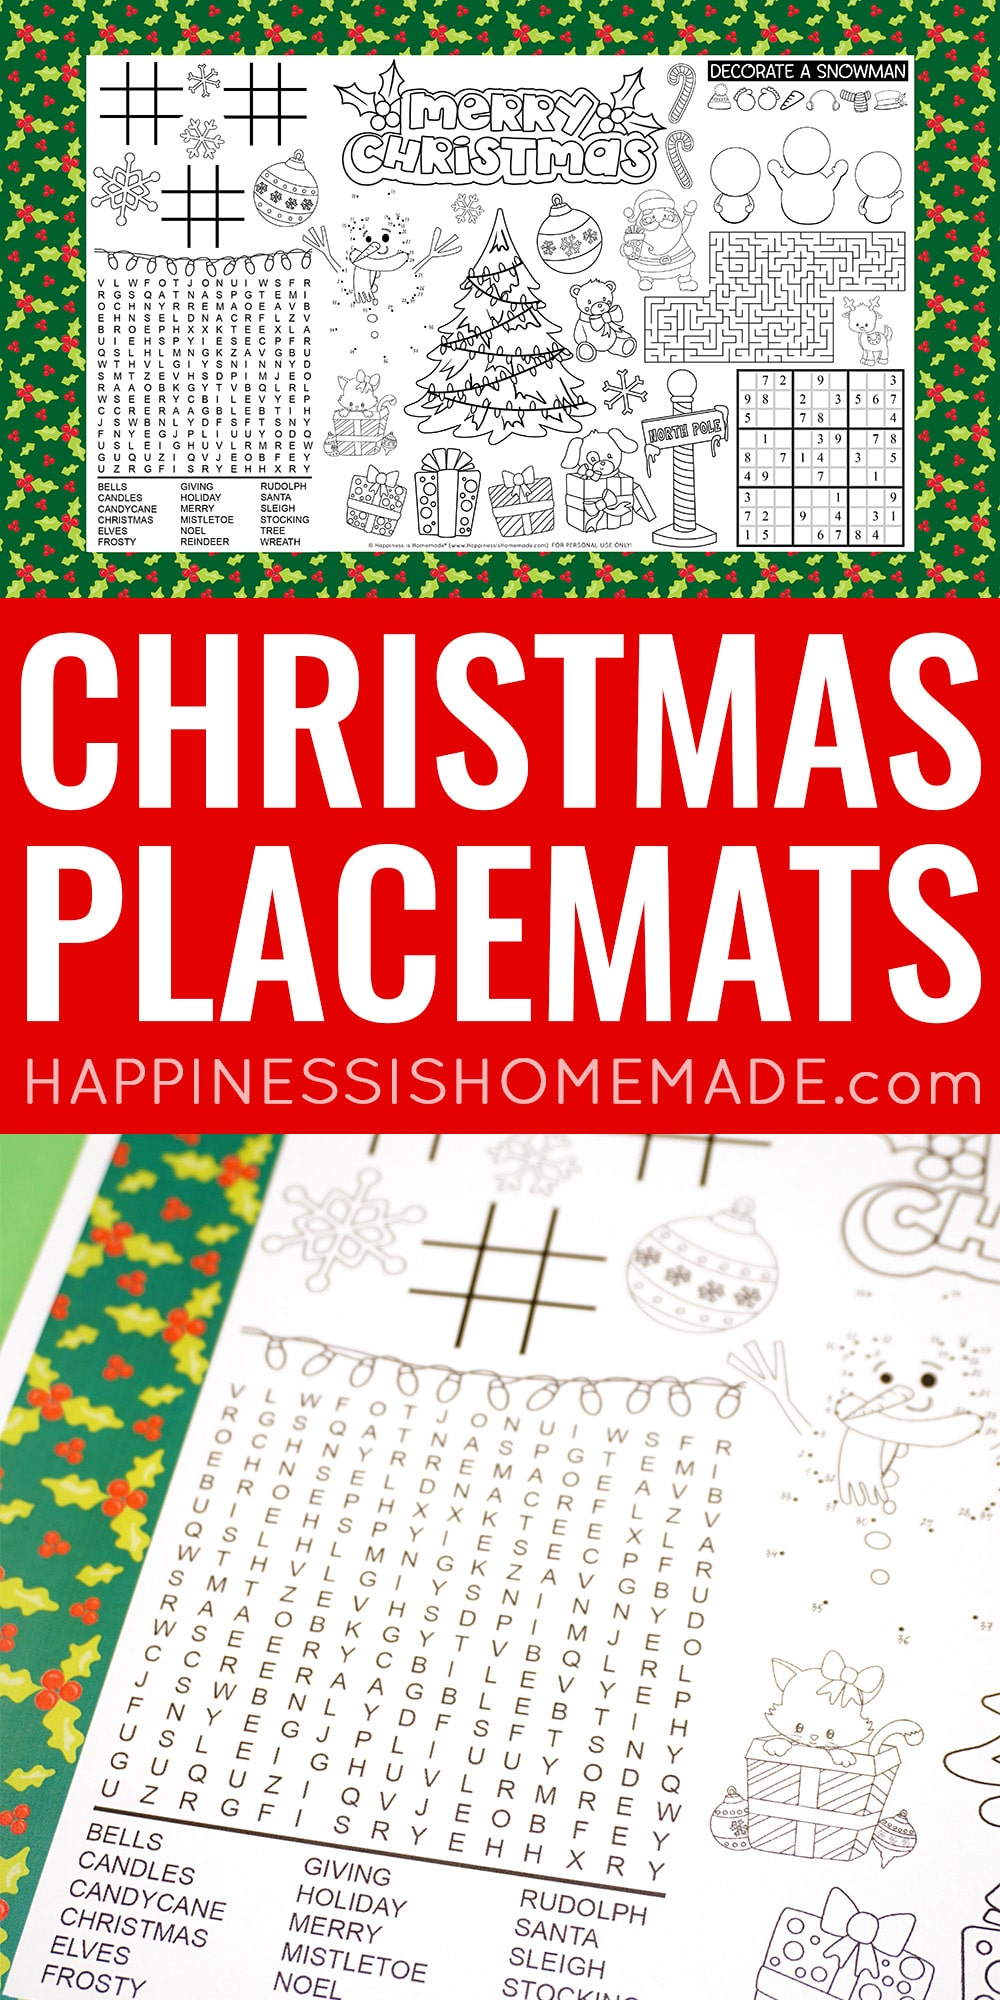 Printable Christmas Placemats for Kids